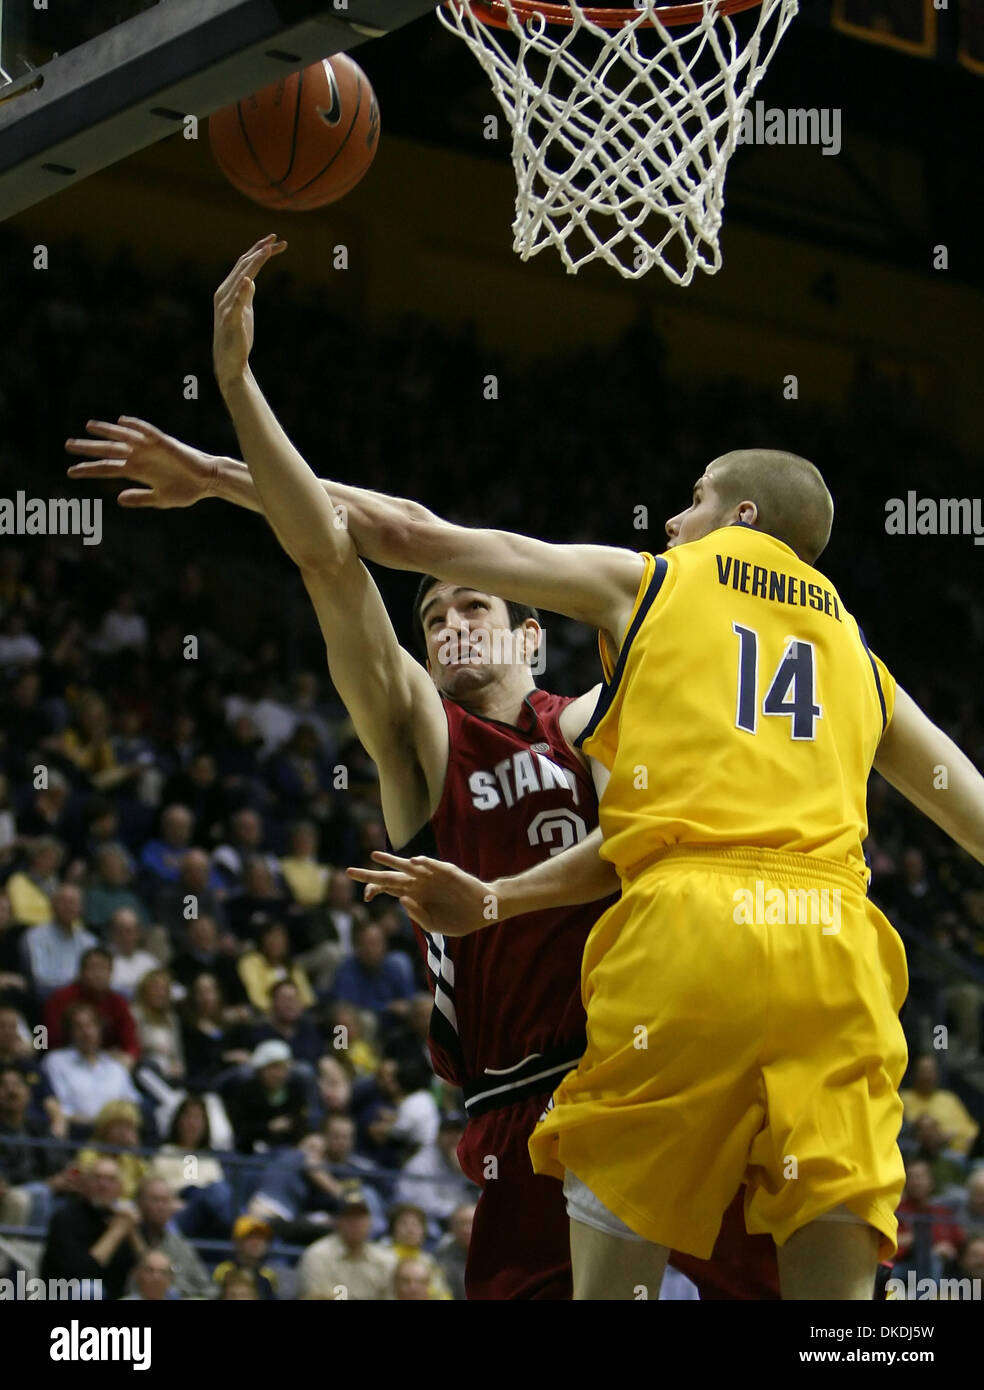 Feb 03, 2007 - Berkeley, CA, USA - California Golden Bear's ERIC VIERNEISEL, #14, fouls Stanford Cardinal's CARLTON WEATHERBY, #3, in the 2nd half of their game on Saturday, February 3, 2007 at Haas Pavilion in Berkeley, Calif. Stanford defeated Cal 90-71. - Stock Image